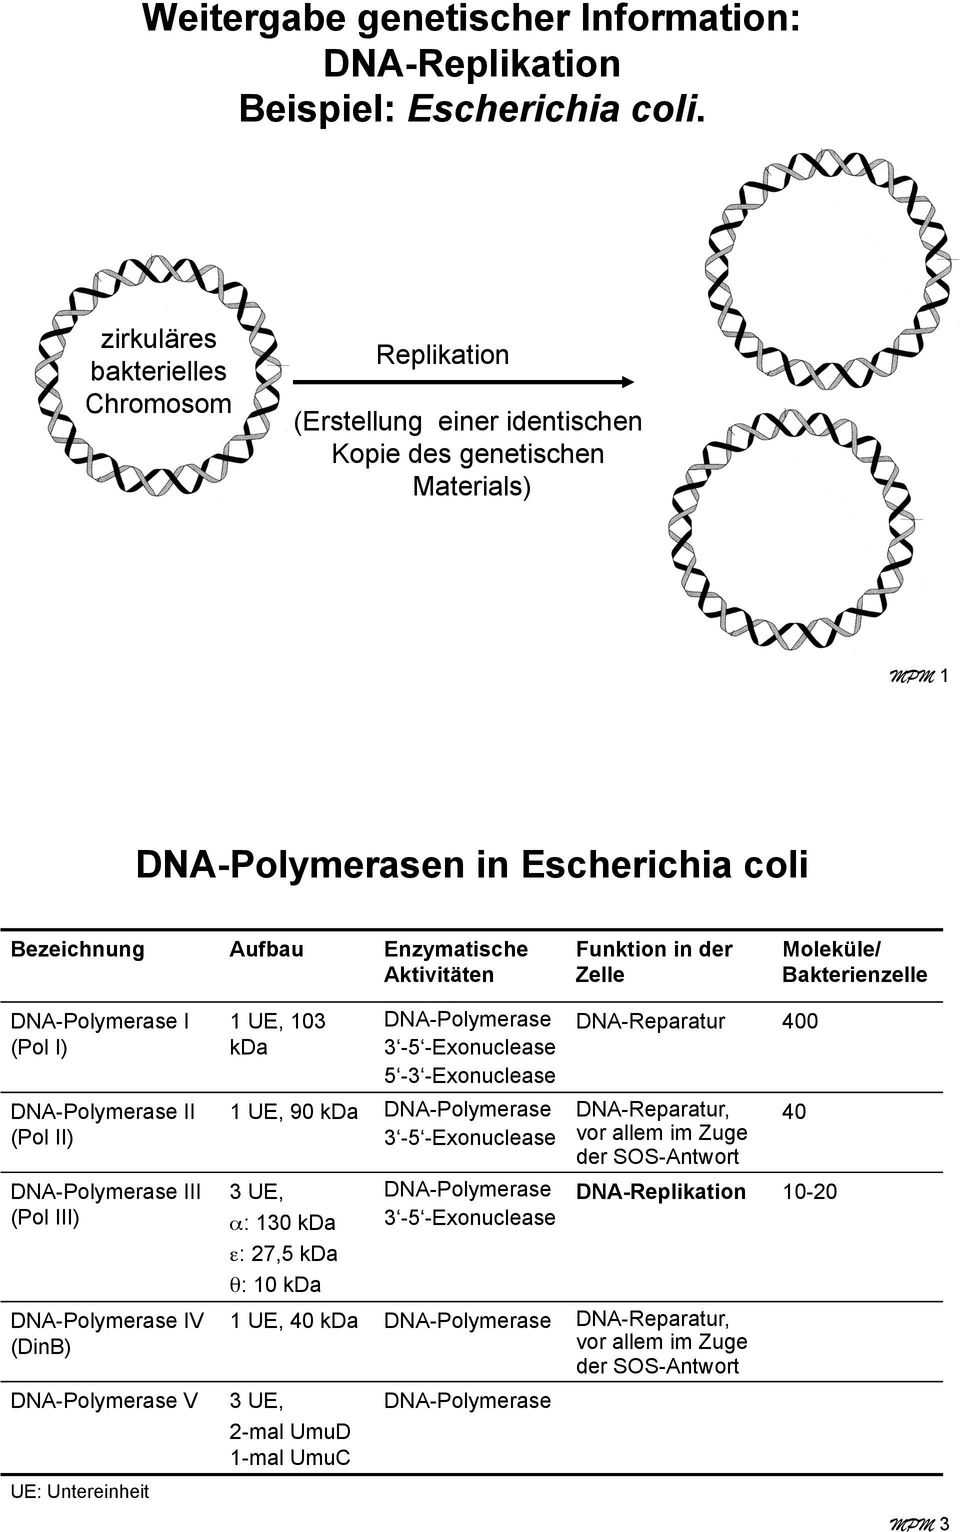 Funktion in der Zelle Moleküle/ Bakterienzelle DNA-Polymerase I (Pol I) DNA-Polymerase II (Pol II) DNA-Polymerase III (Pol III) DNA-Polymerase IV (DinB) DNA-Polymerase V UE: Untereinheit 1 UE, 103